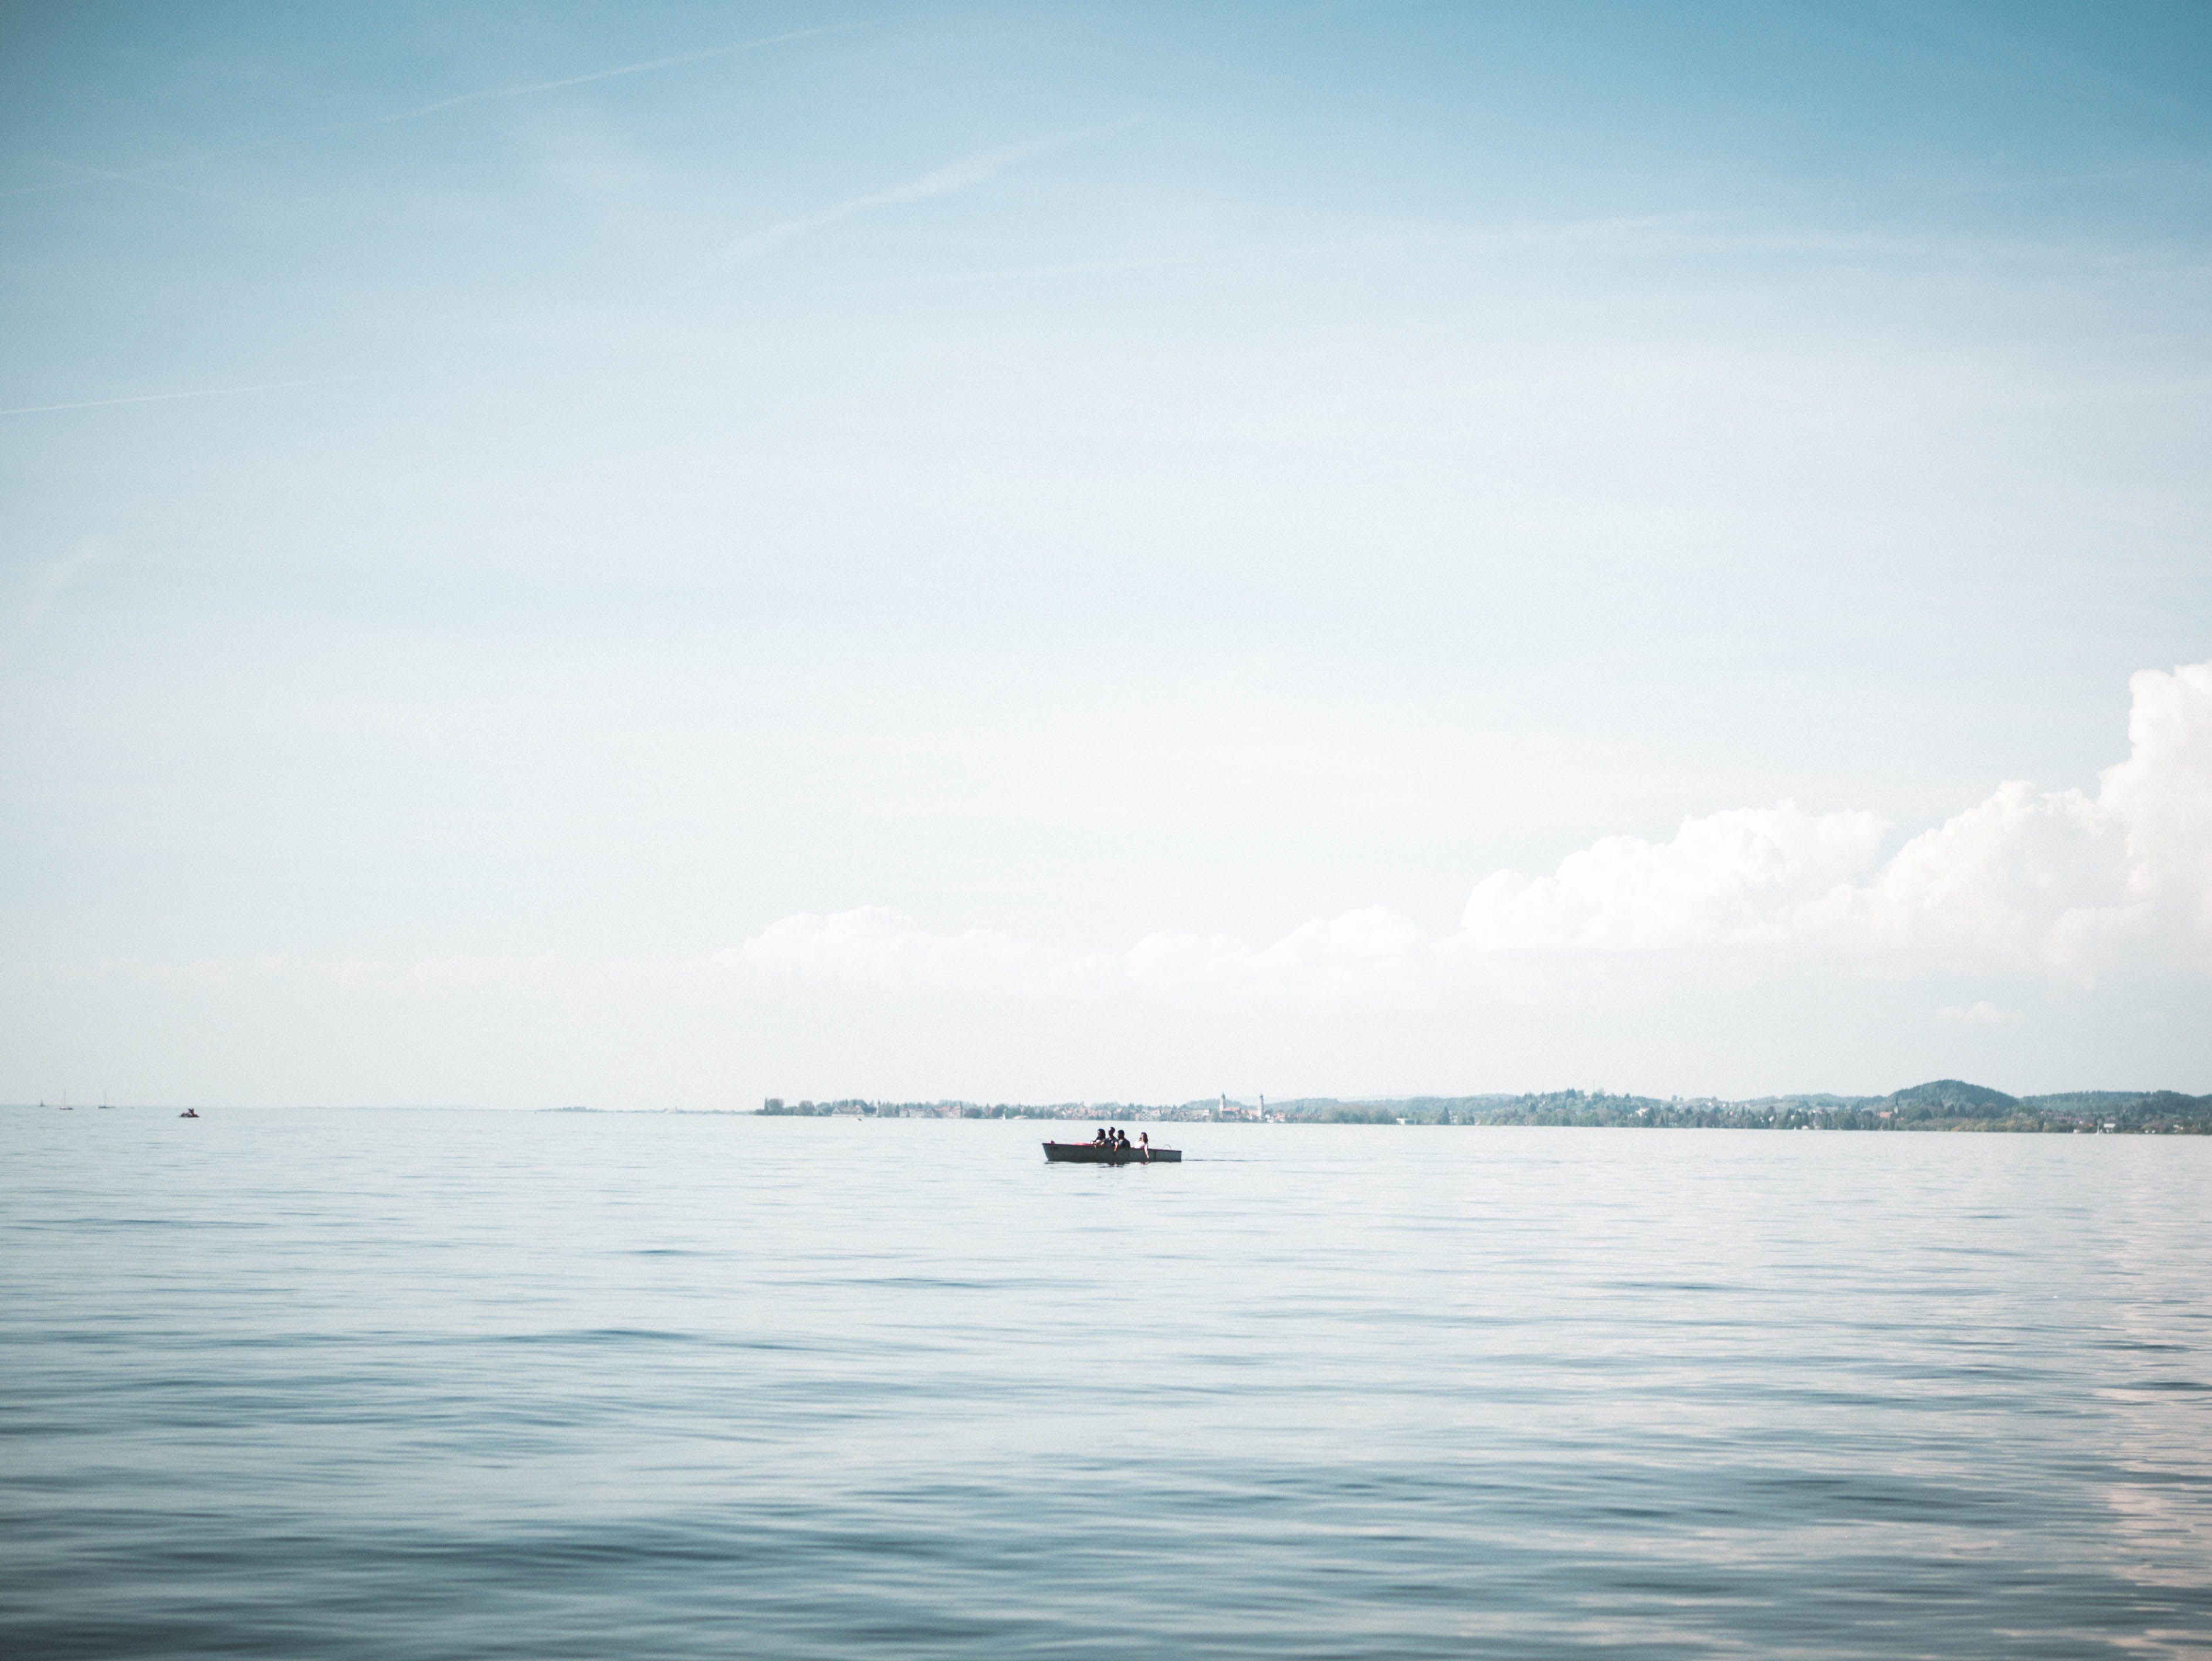 Boat on Calm Body of Water